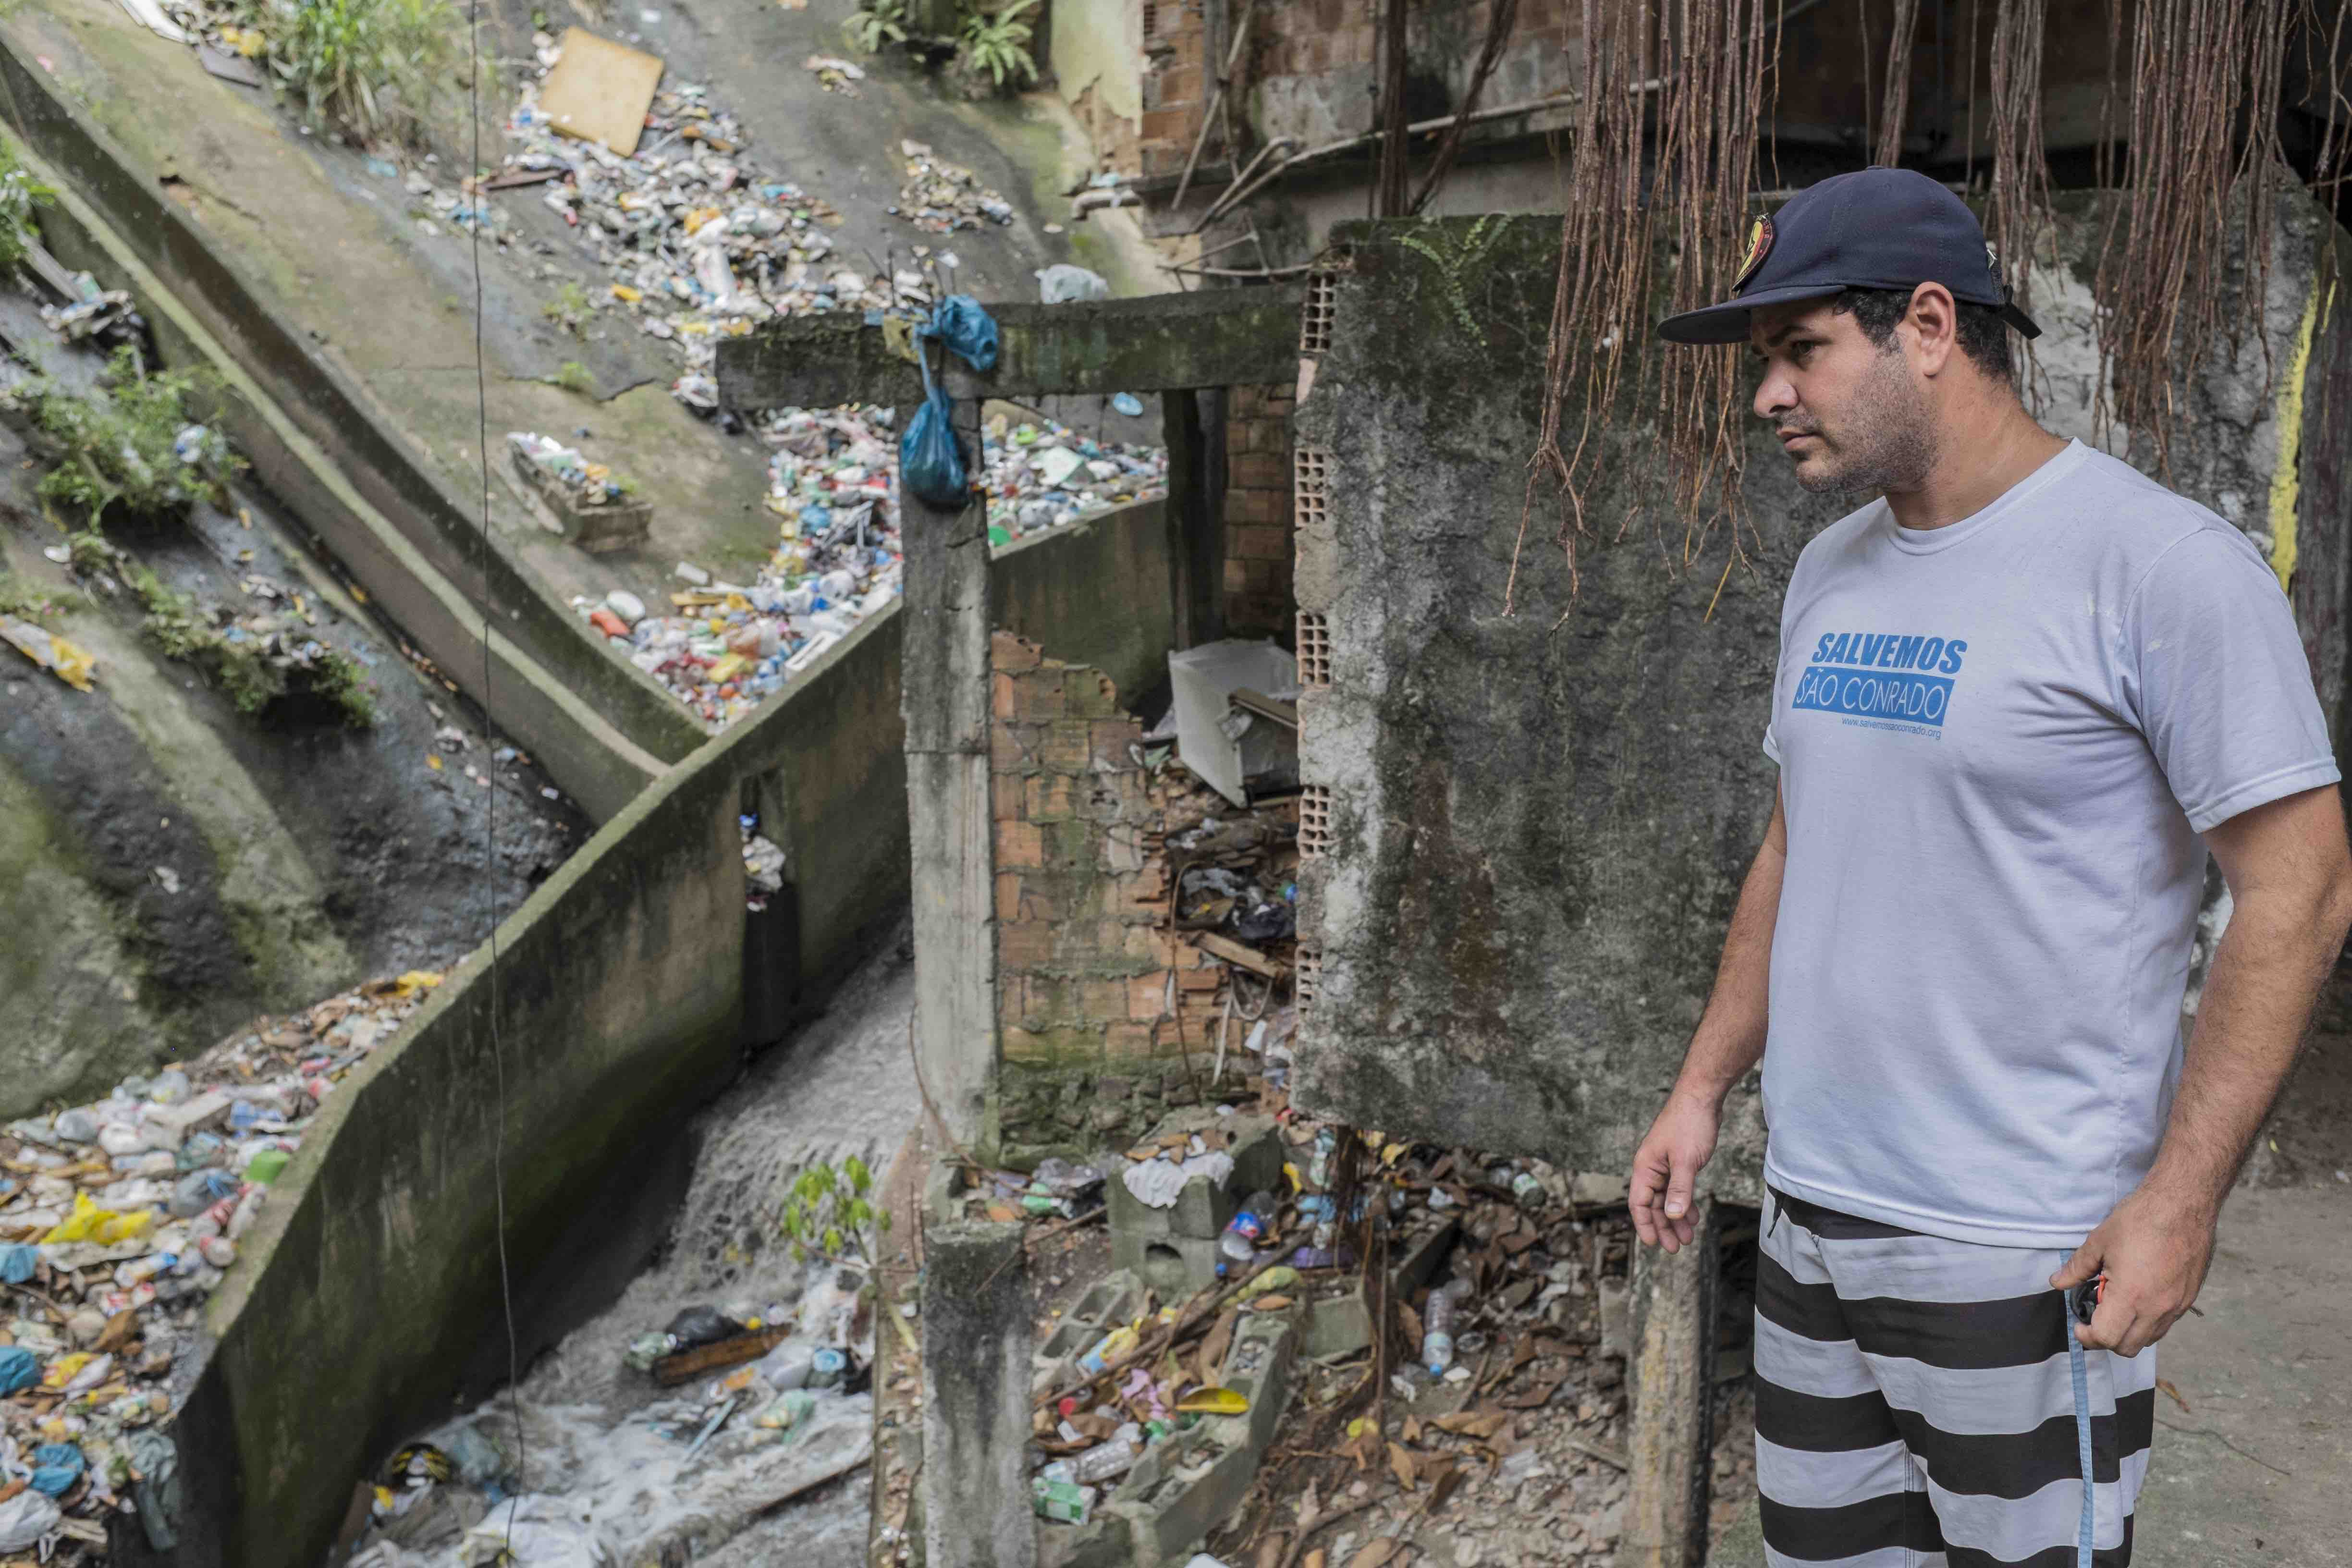 Marcello Farias in front of a polluted drain in Lajão, Rocinha.